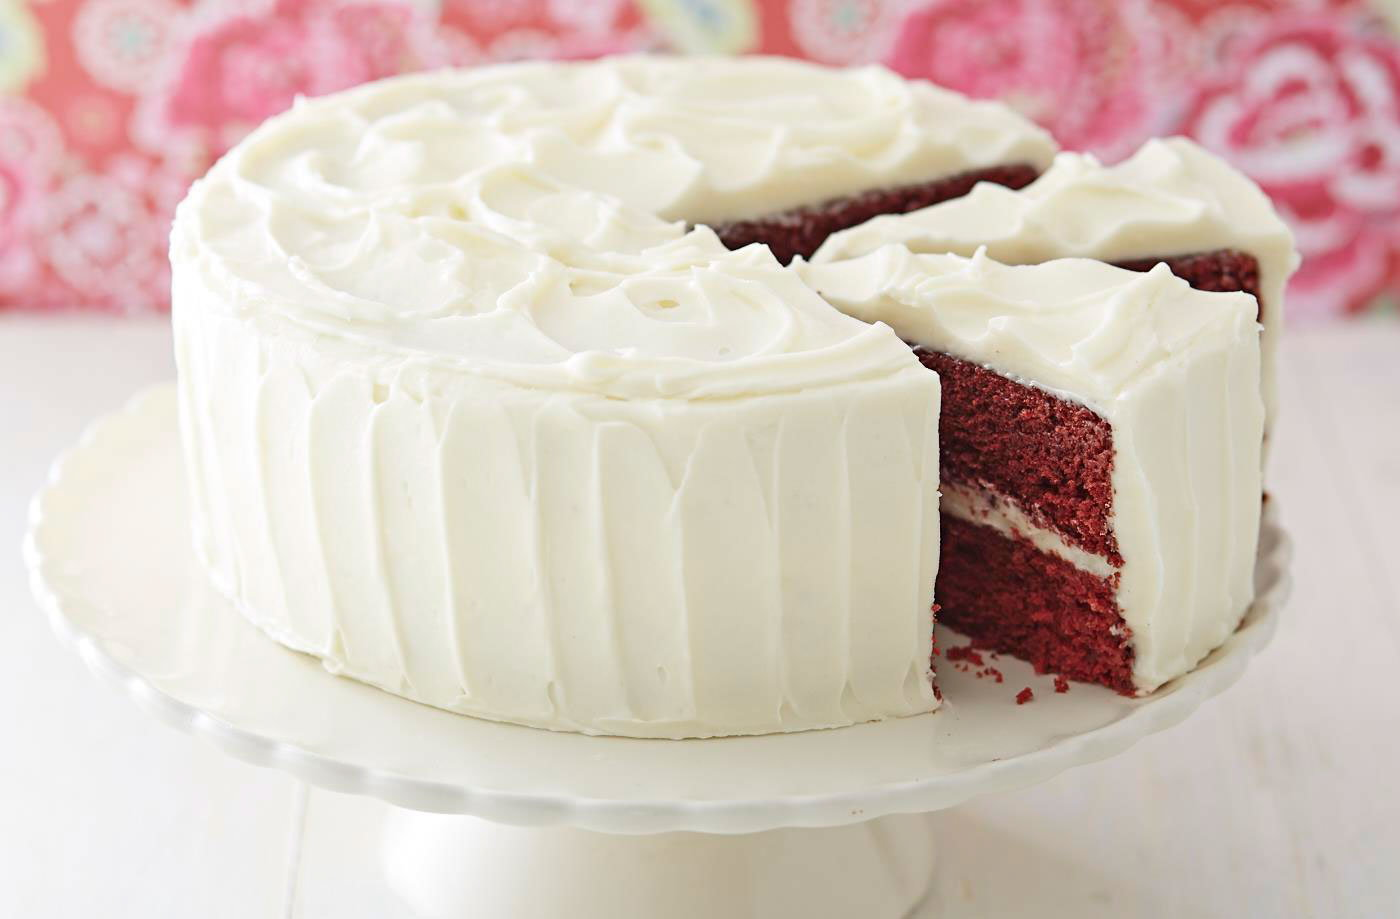 How To Make Vanilla Cake At Home In Oven